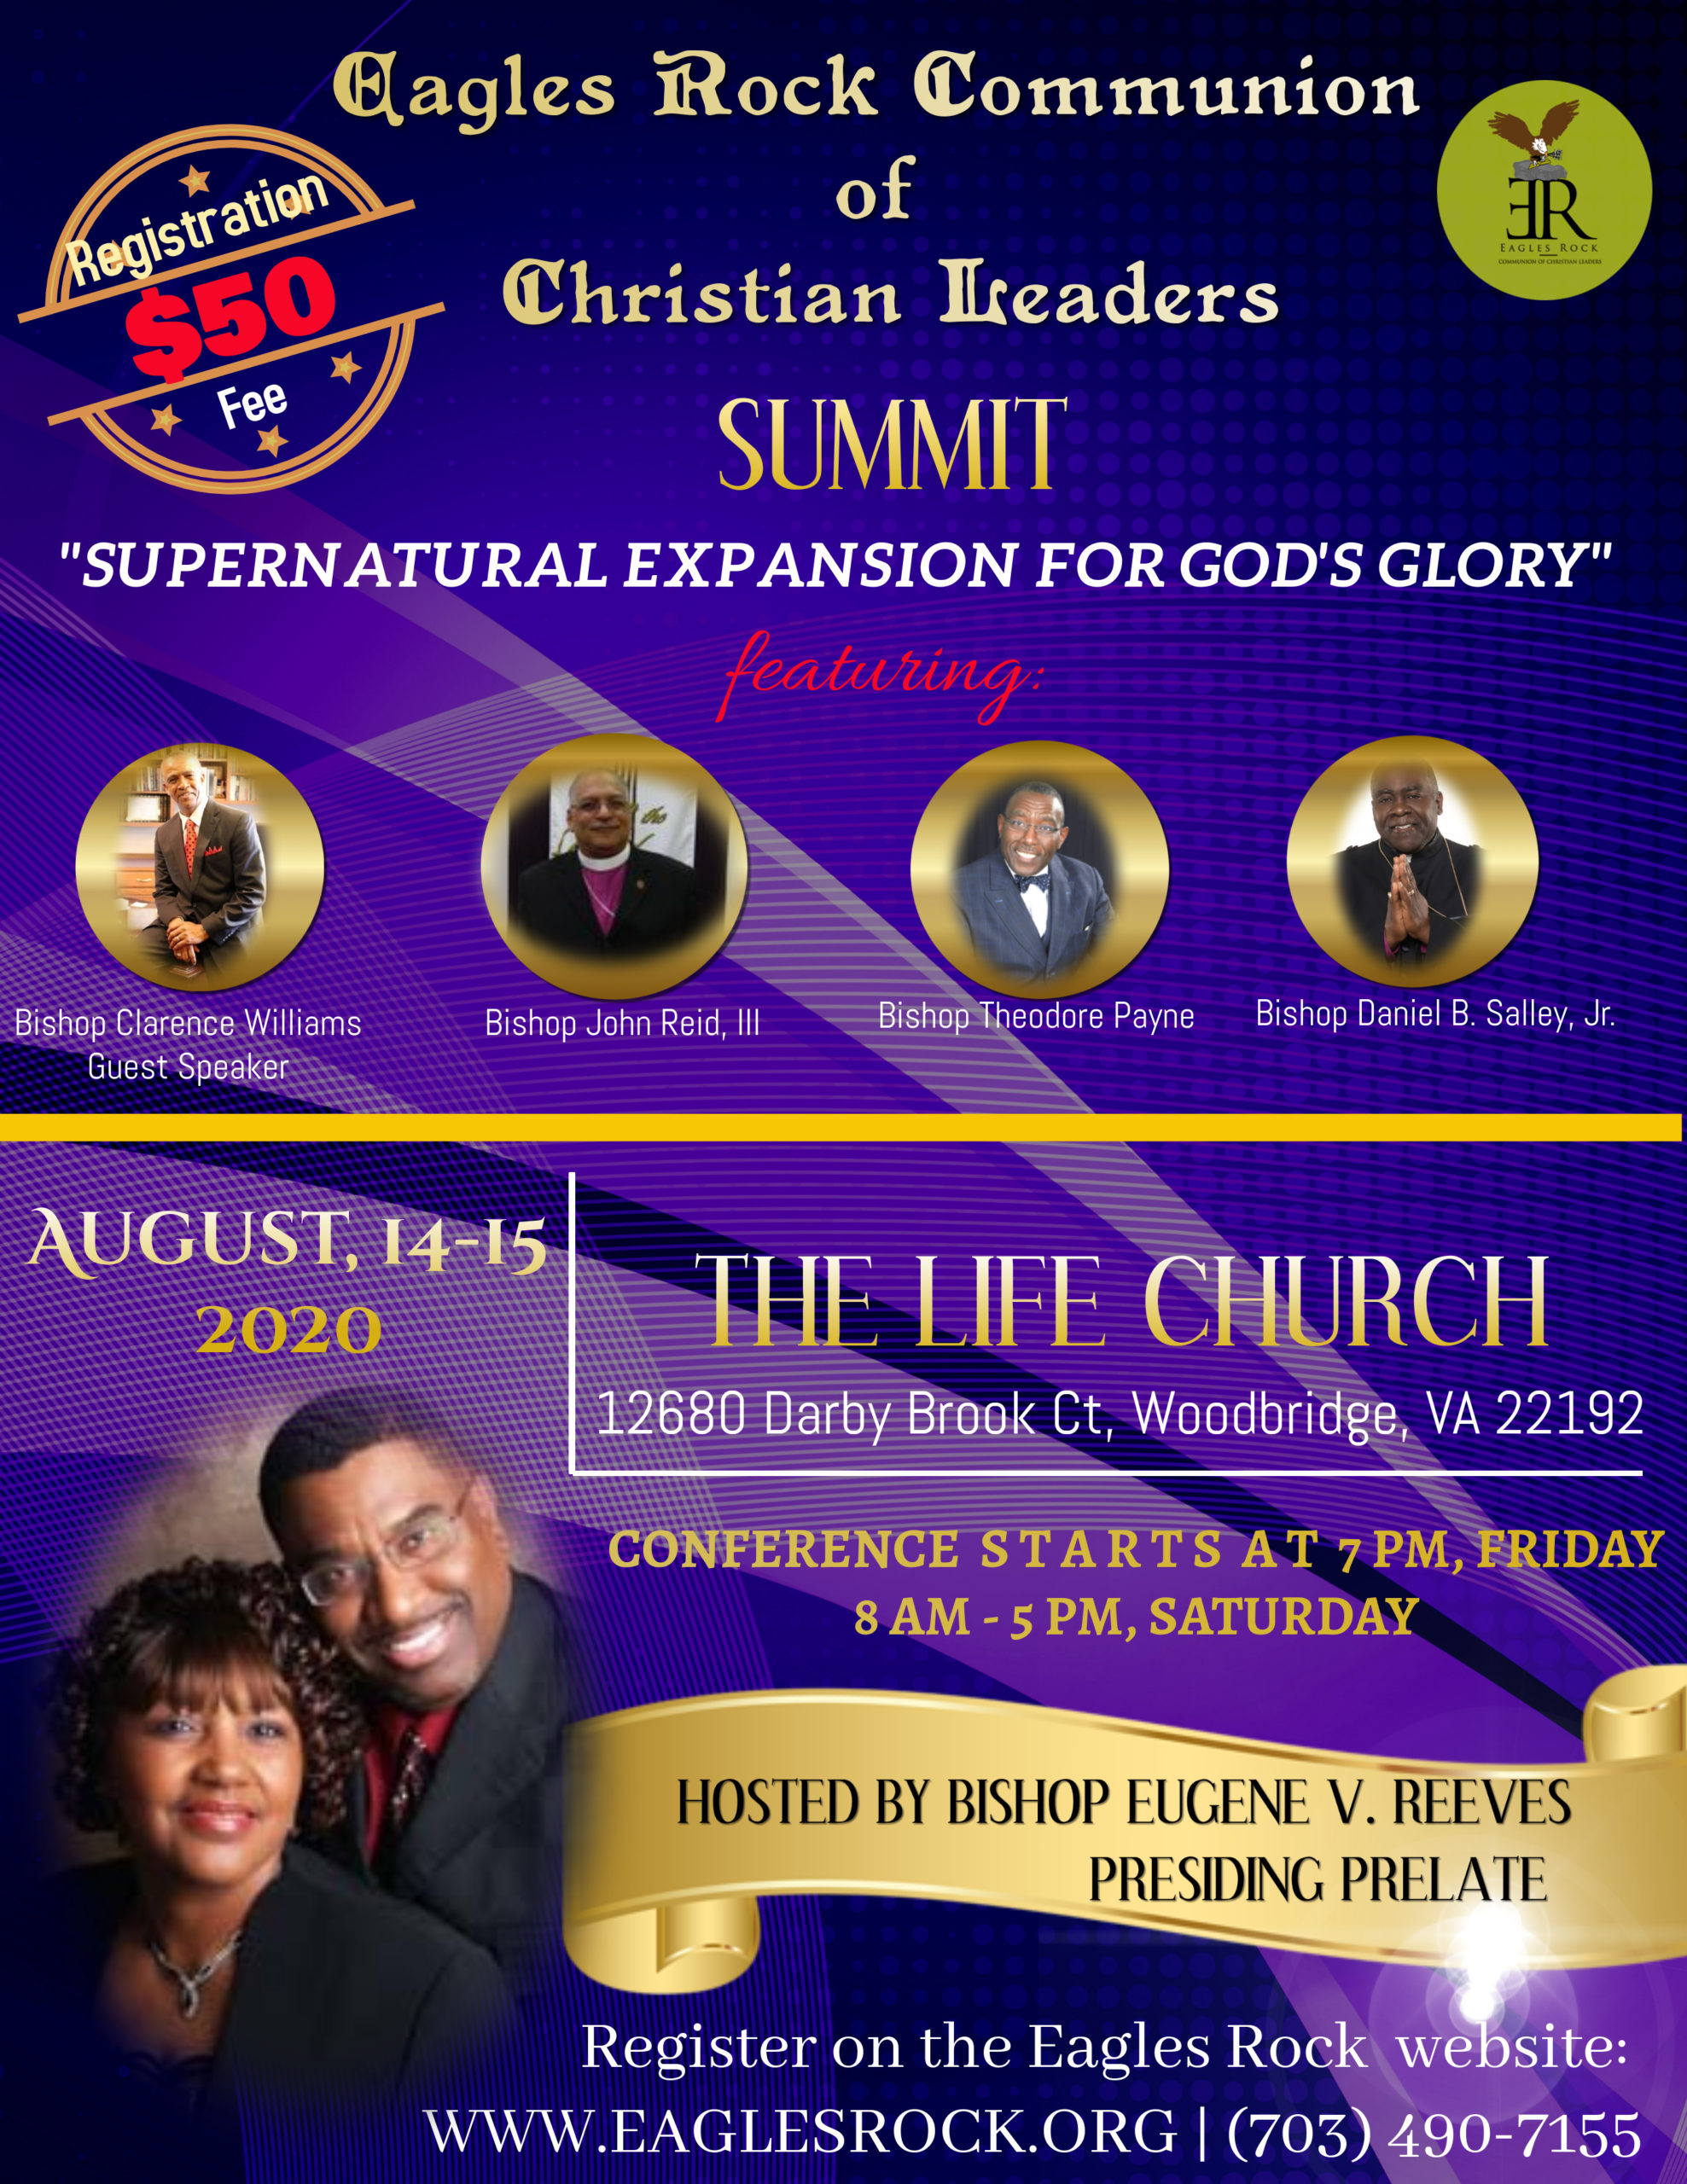 Eagles Rock Communion of Christian Leaders SUMMIT 2020